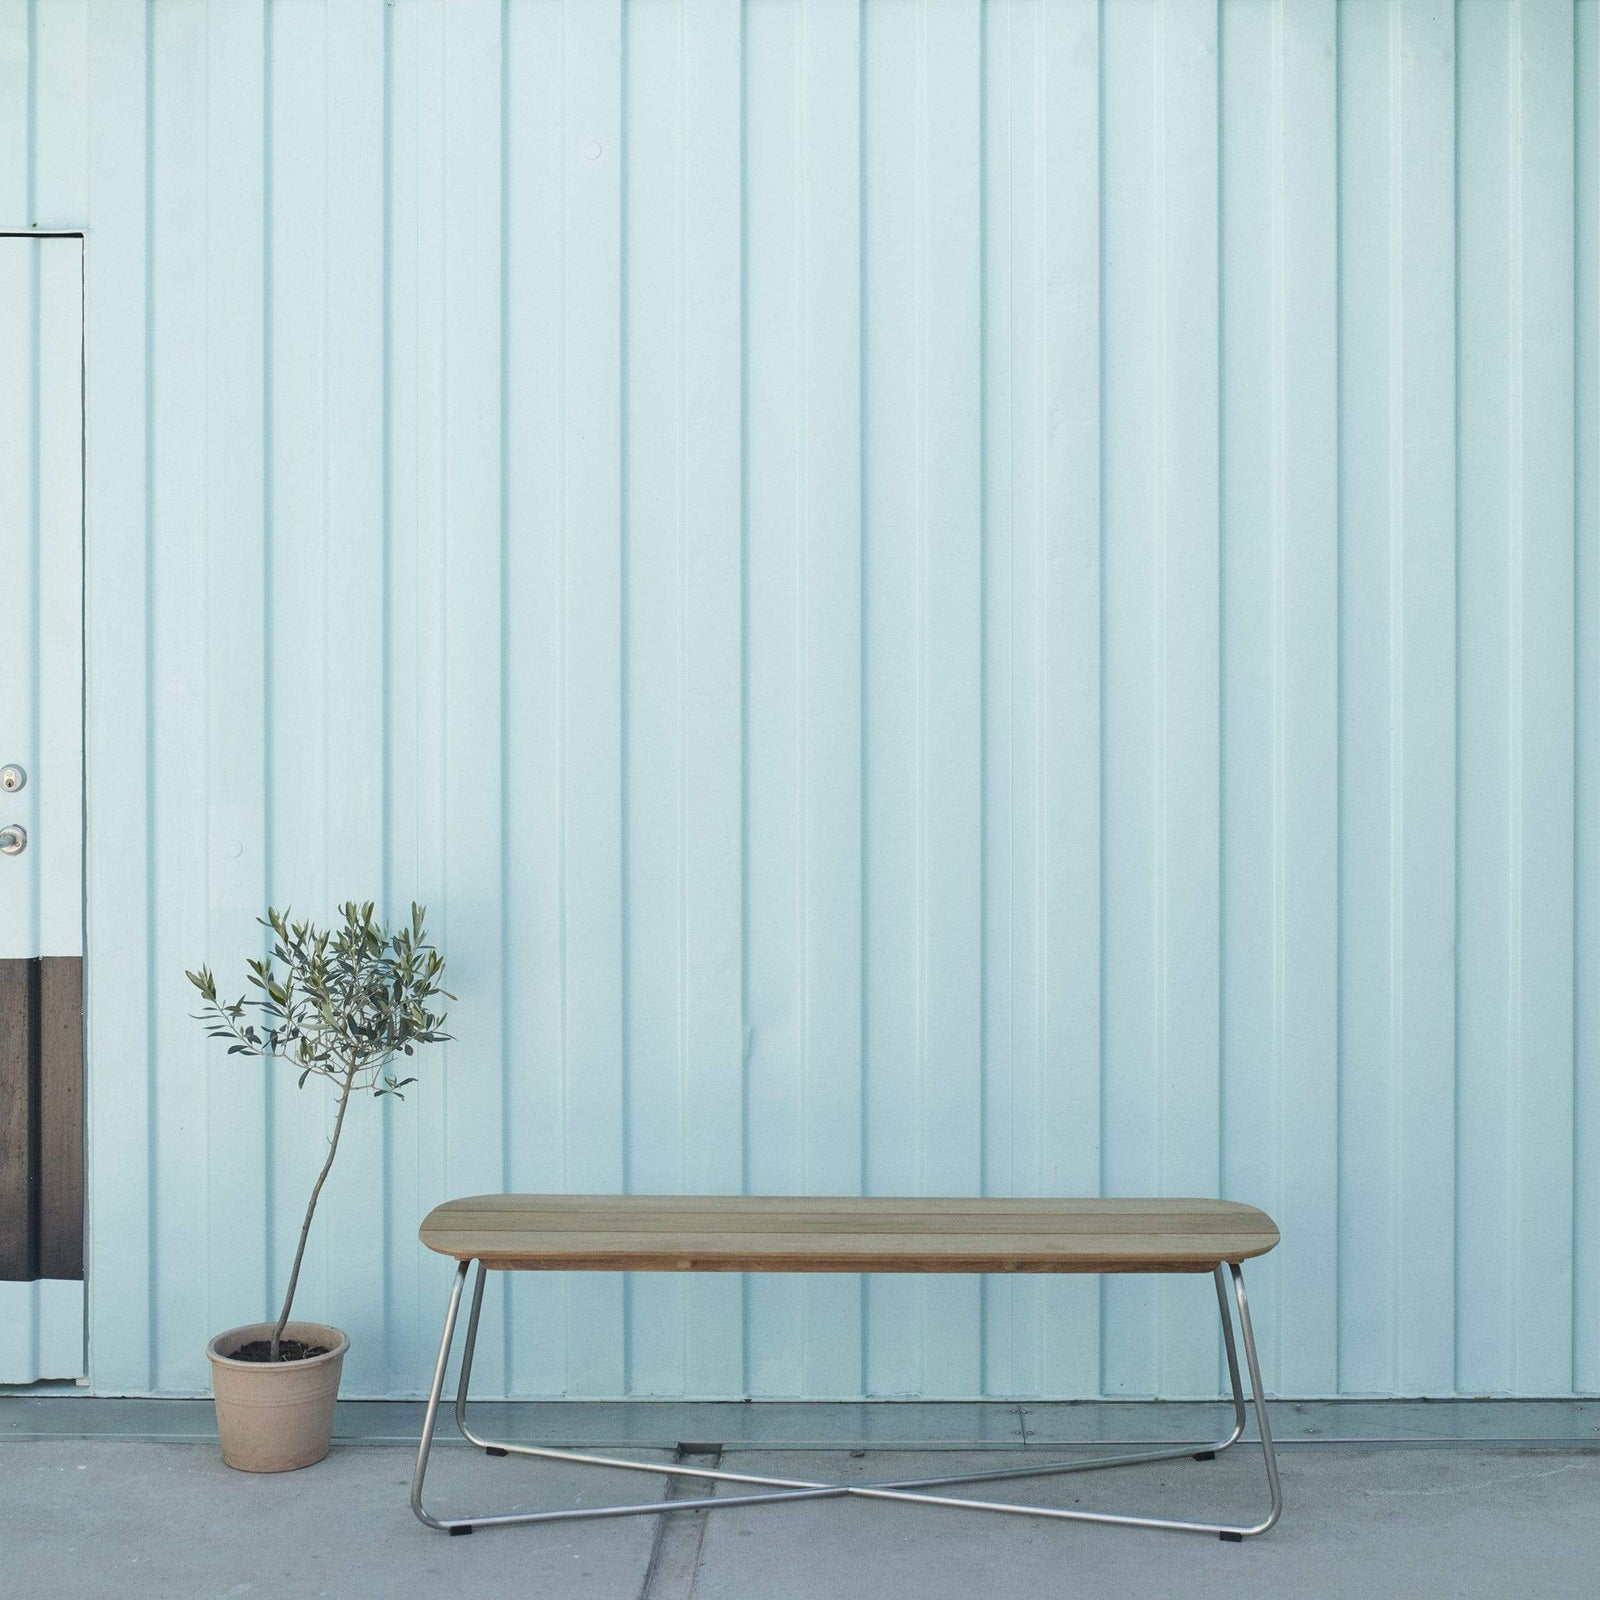 Skagerak Design Furniture Lilium Bench